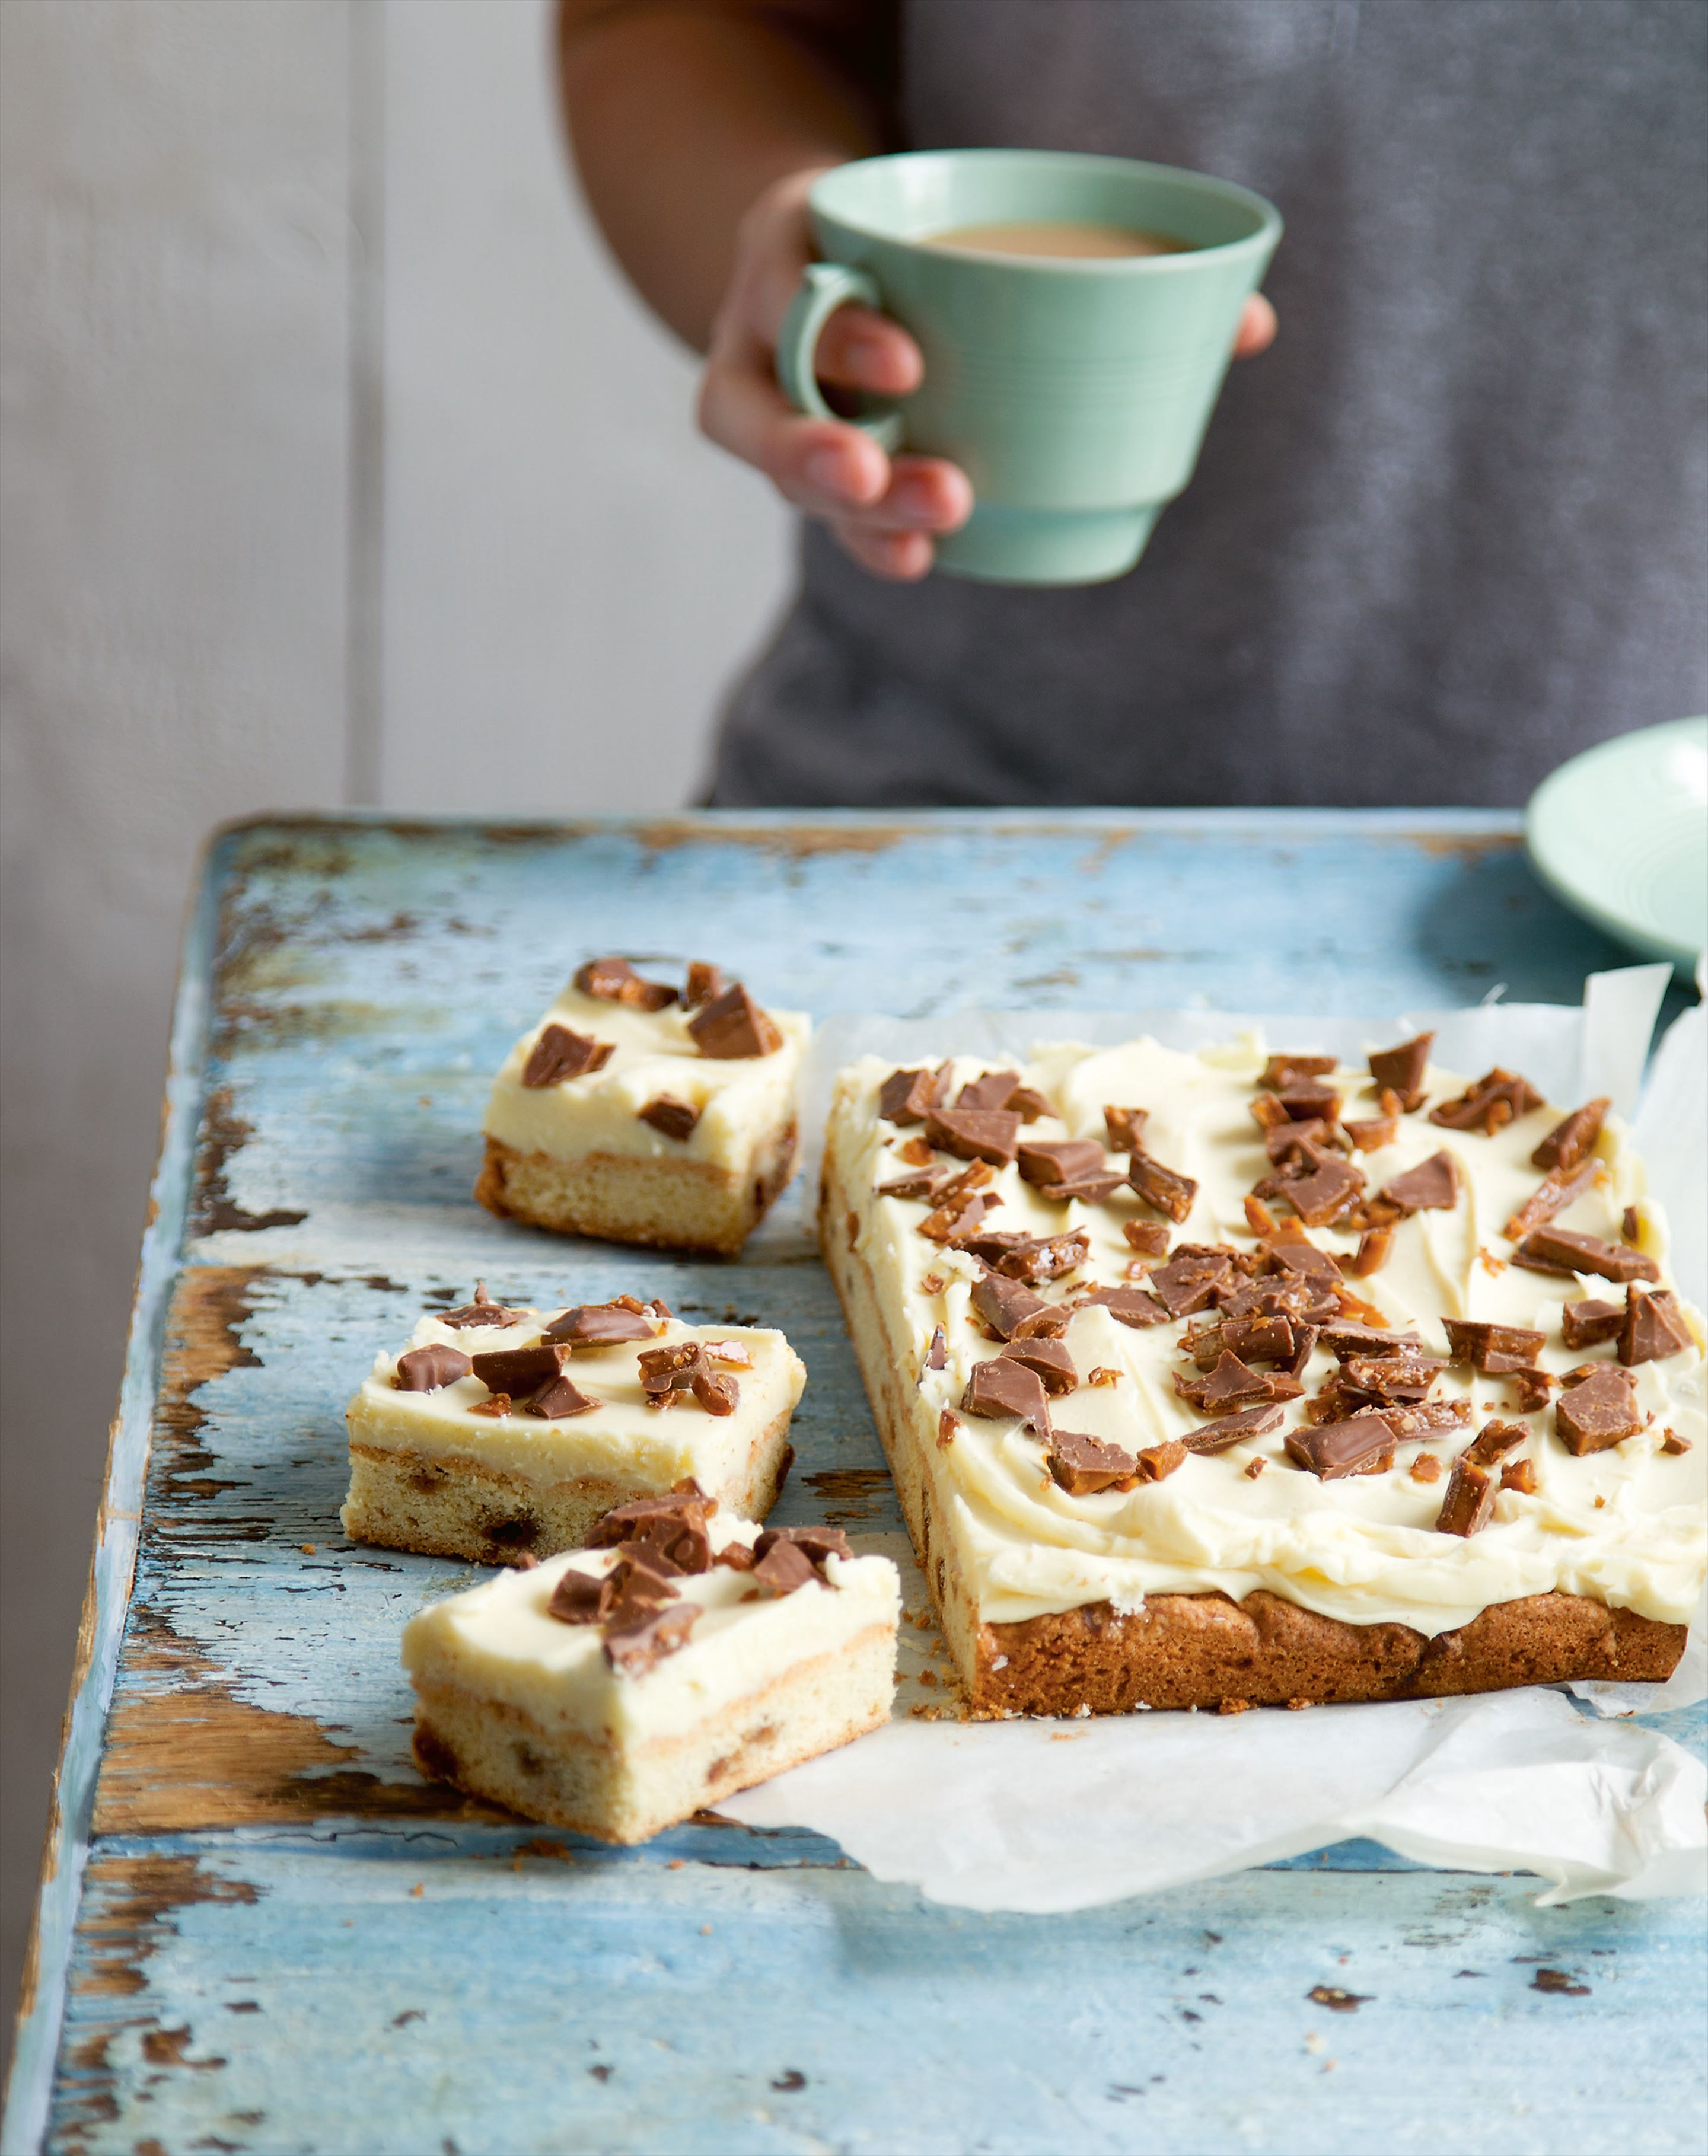 Daim and white chocolate traybake